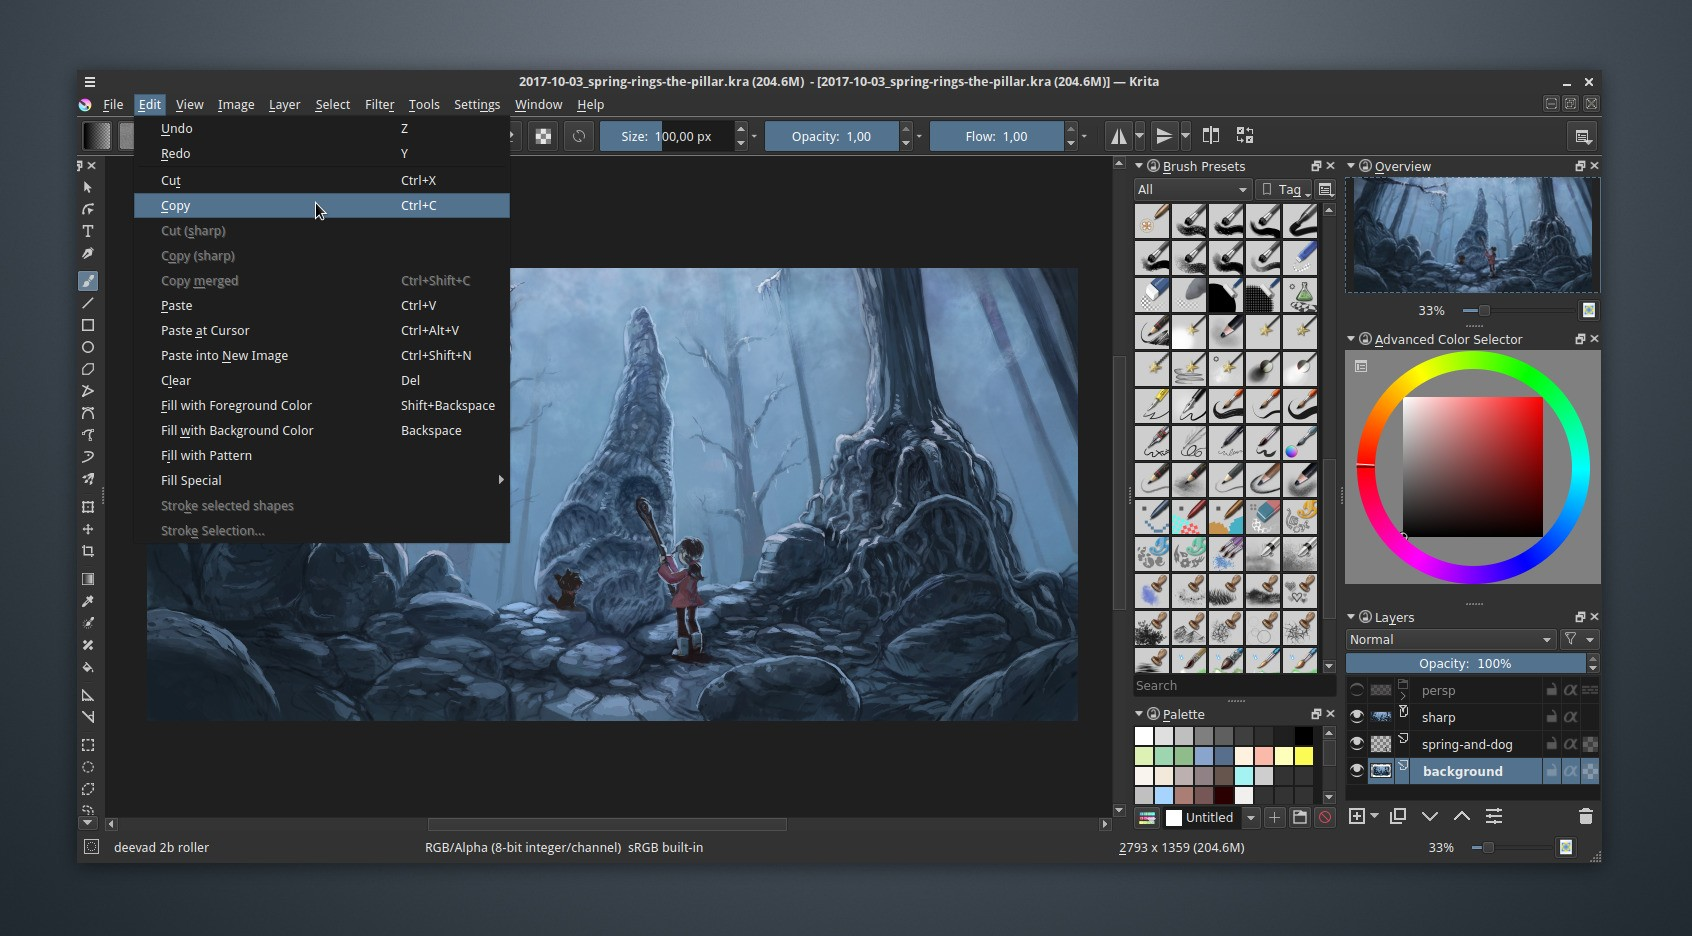 krita-4-0-open-source-digital-painting-app-is-one-of-the-biggest-releases-ever-520355-5.jpg